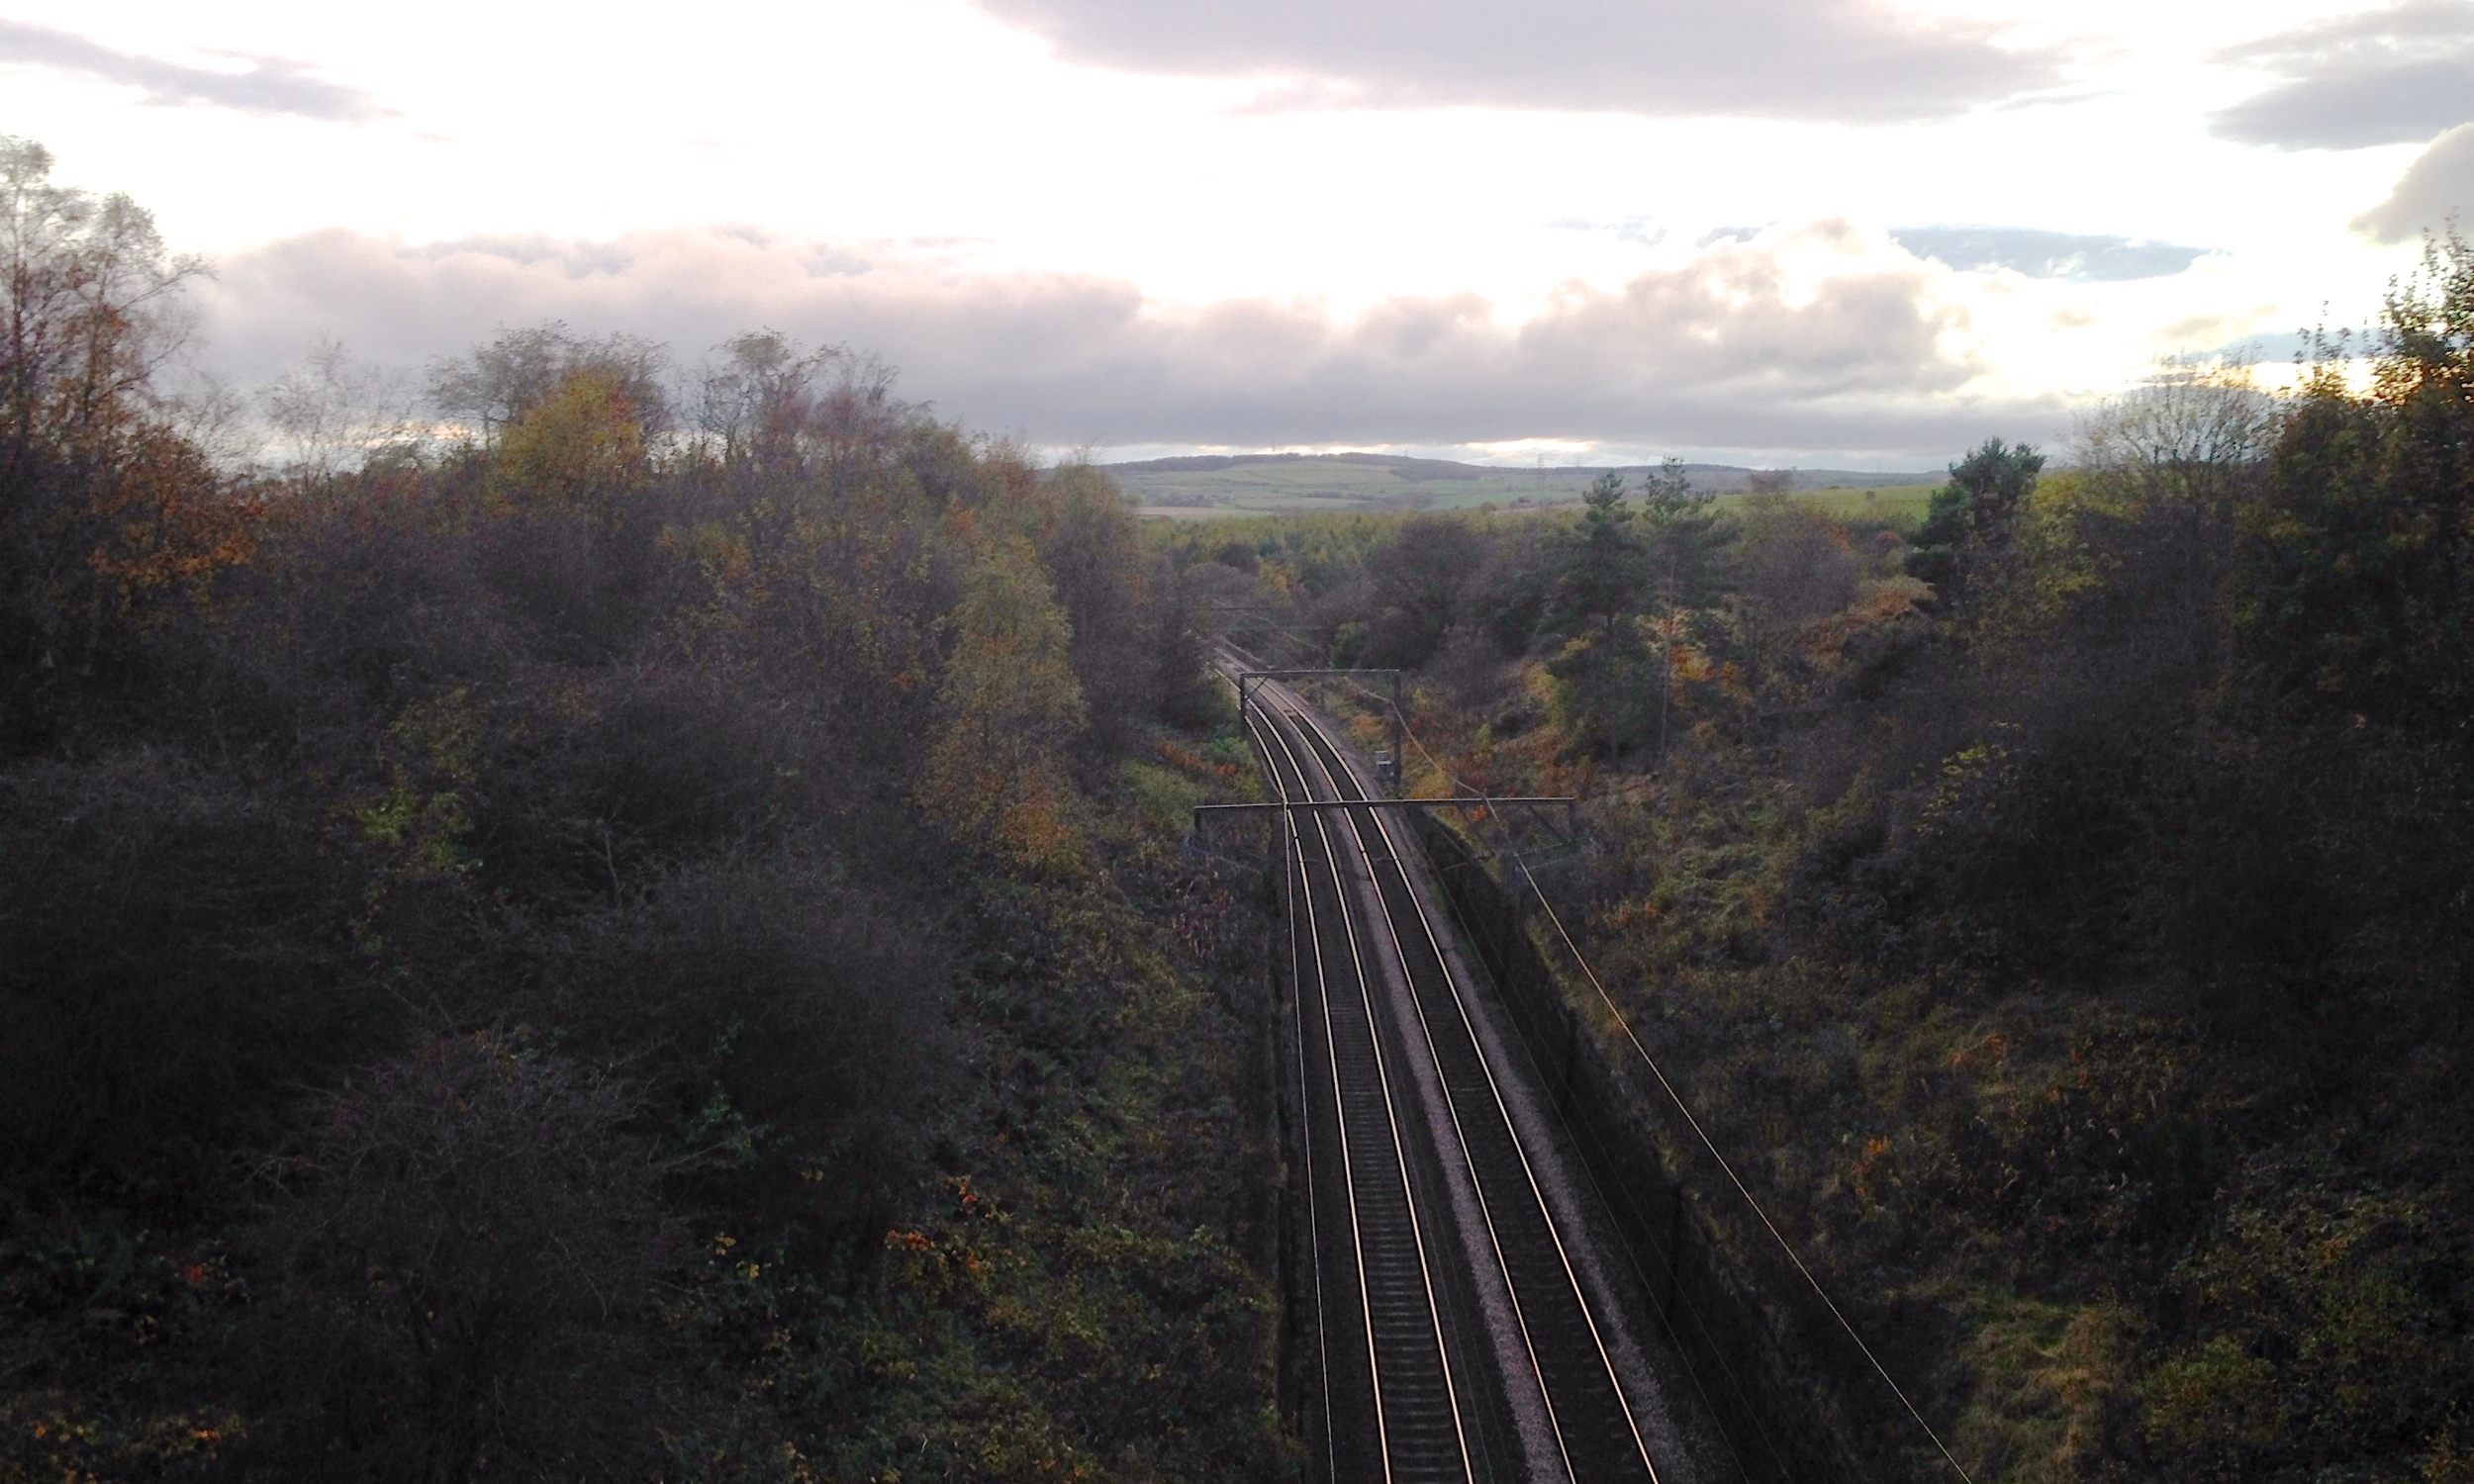 The East Coast train line that passes by Natalie's Cottage.